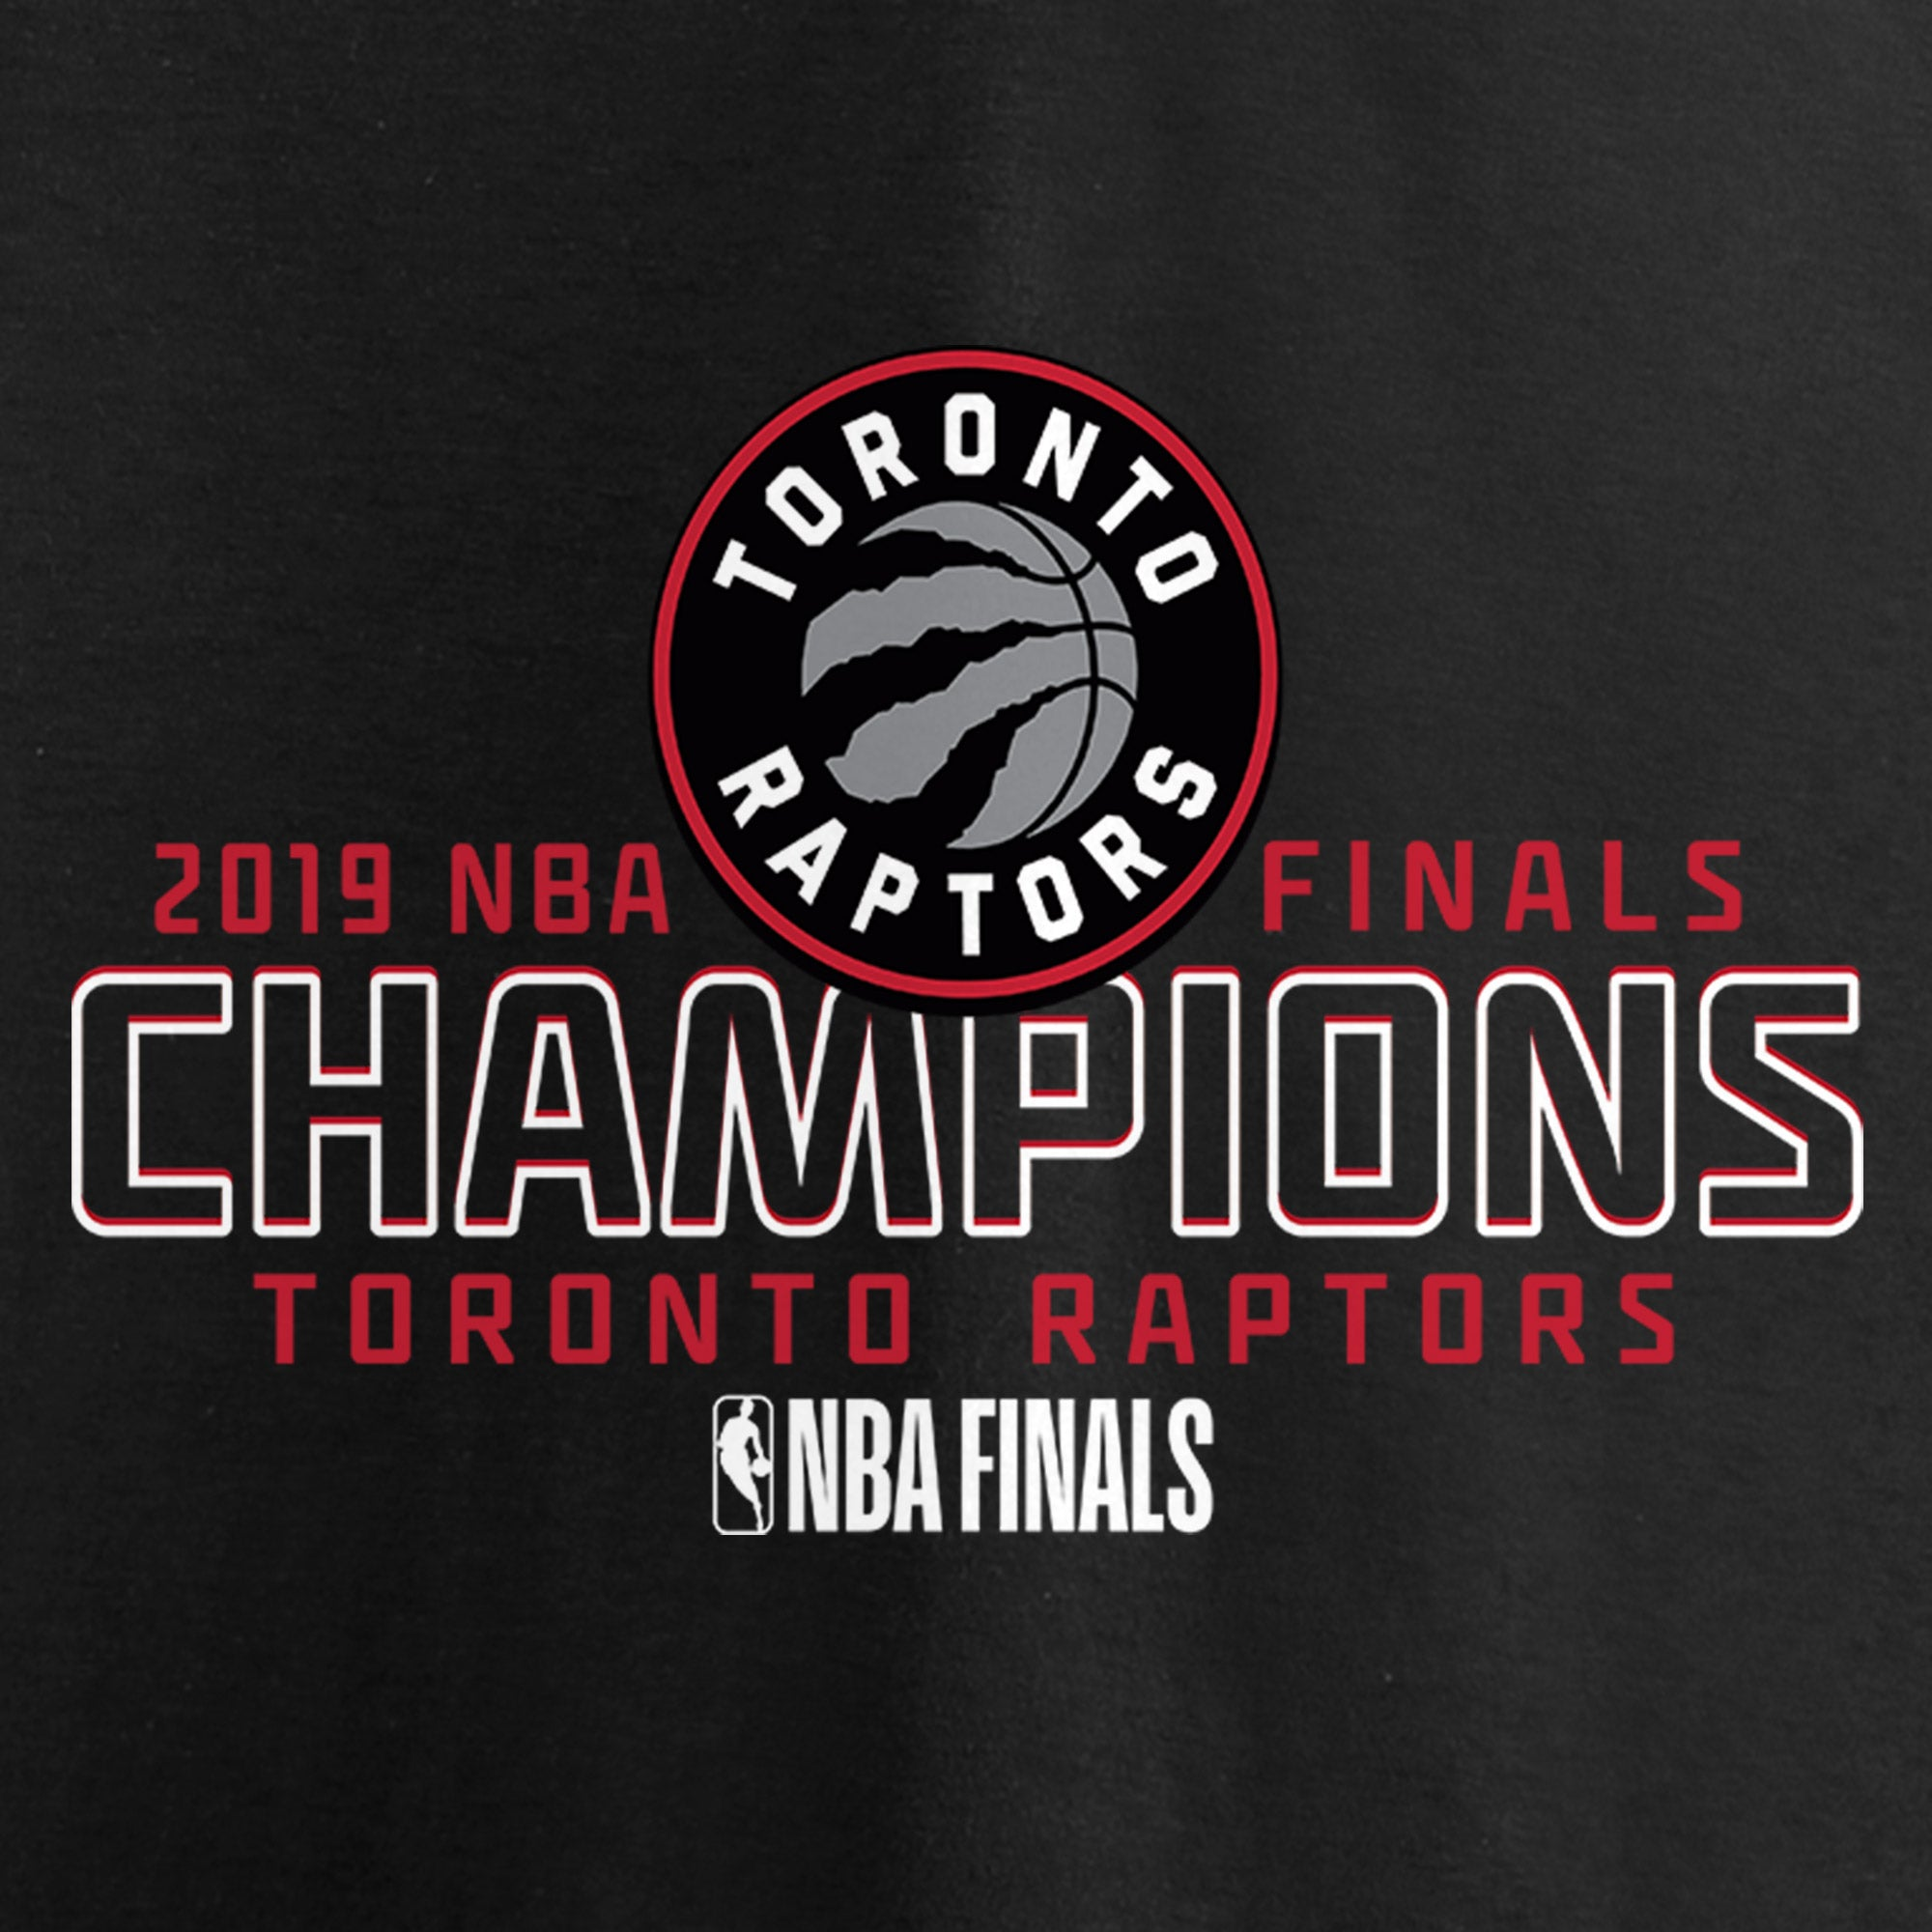 Raptors Fanatics Men's 2019 NBA Champs Faces of Victory Tee